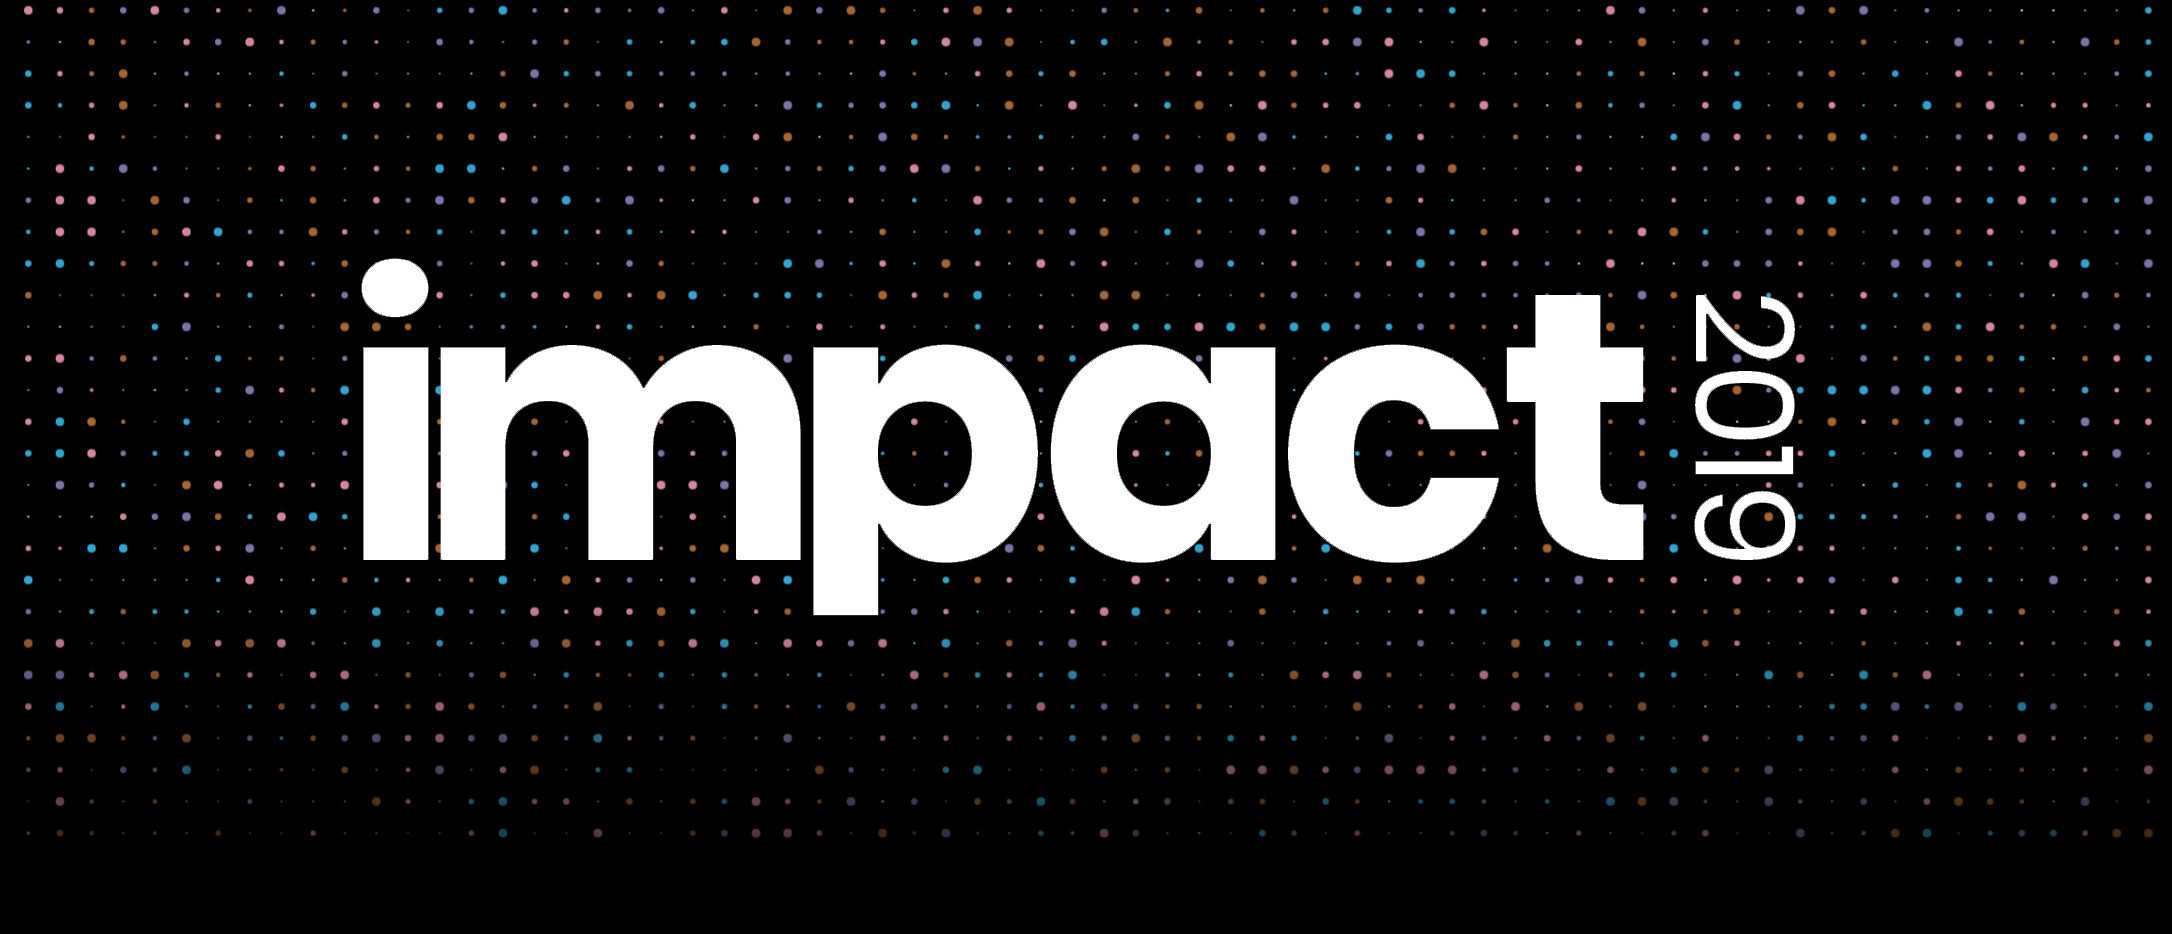 Impact 2019 - MRS Annual Conference - 12 Mar 2019 | Events